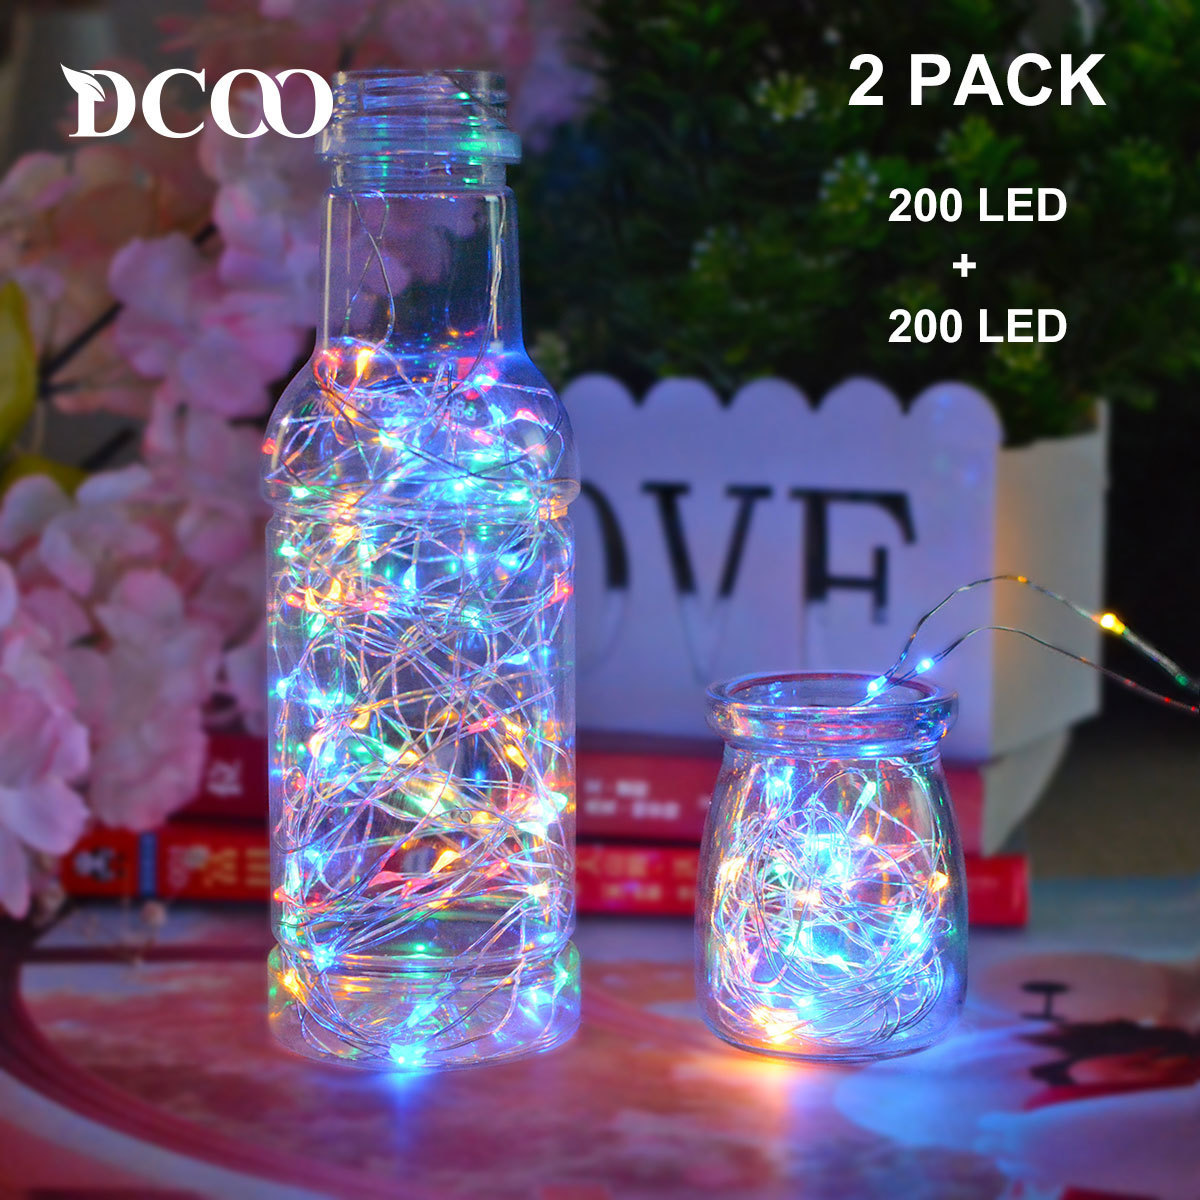 Solar Powered Copper Wire LED String Lights 200 LED Starry Rope Lights Indoor Outdoor Lighting Home Garden Christmas Decoration